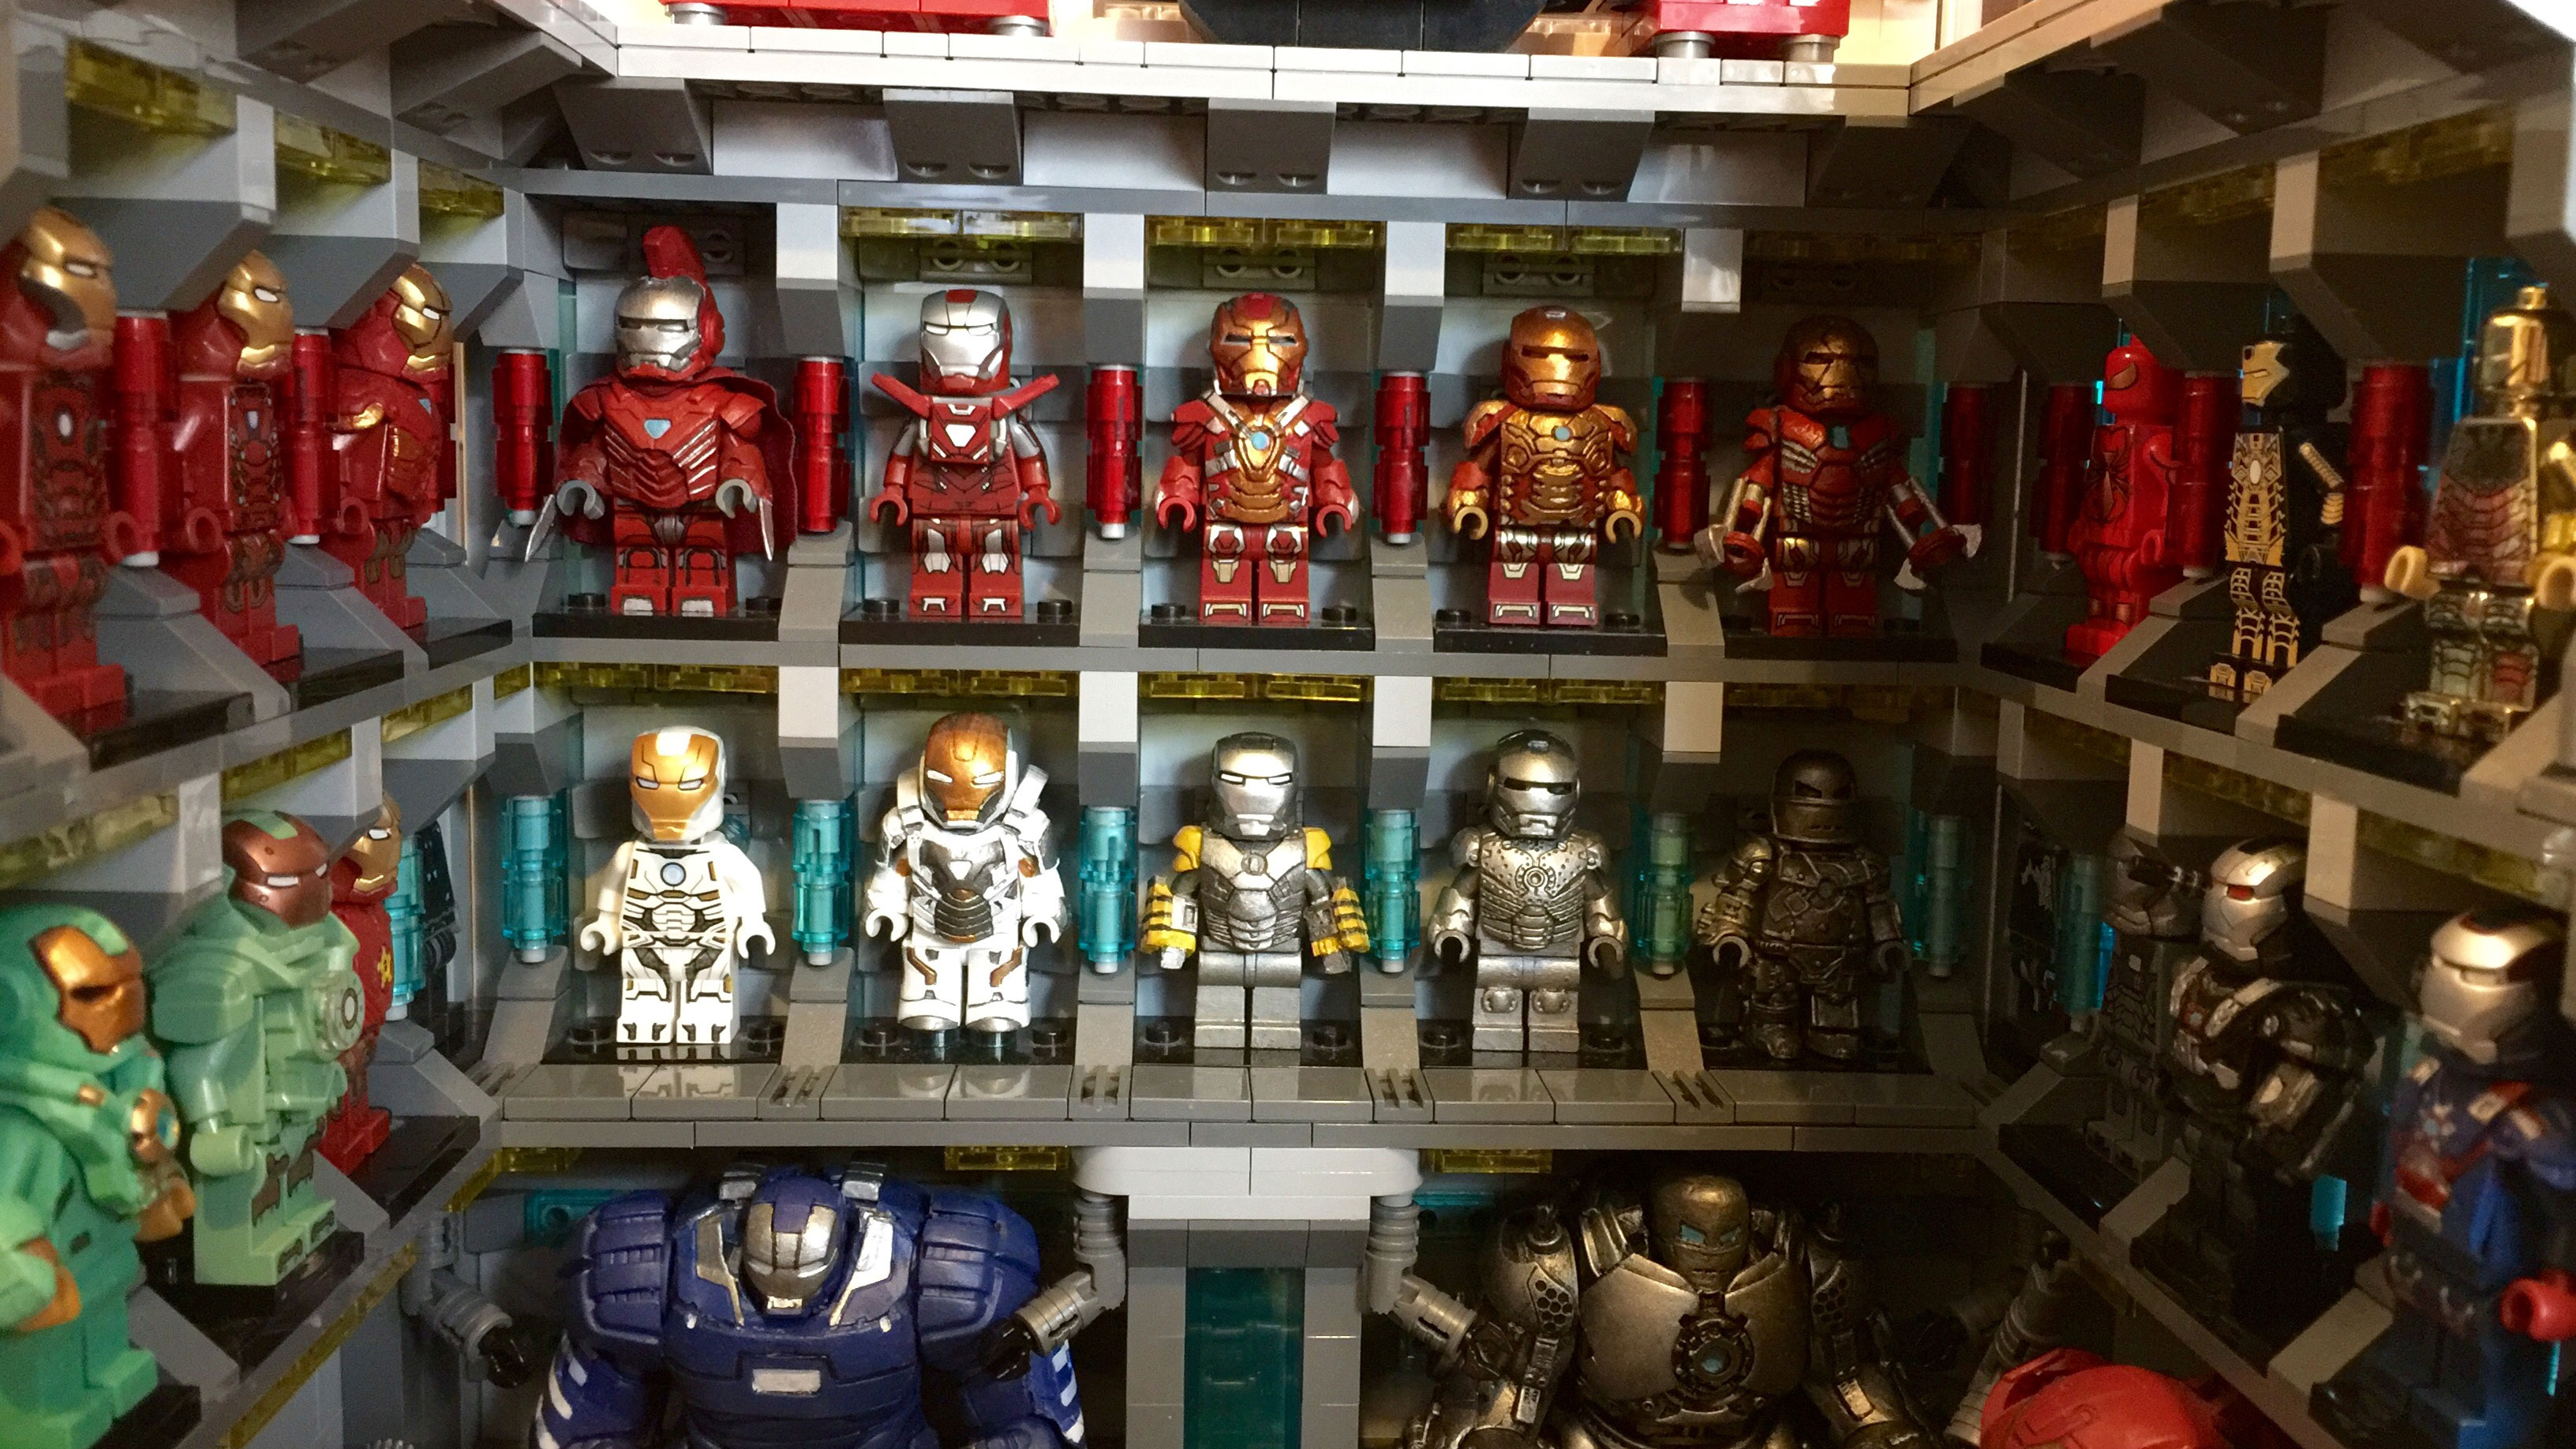 Lego versions of all the Iron Man suits would take so long ... Lego Iron Man 3 Suits